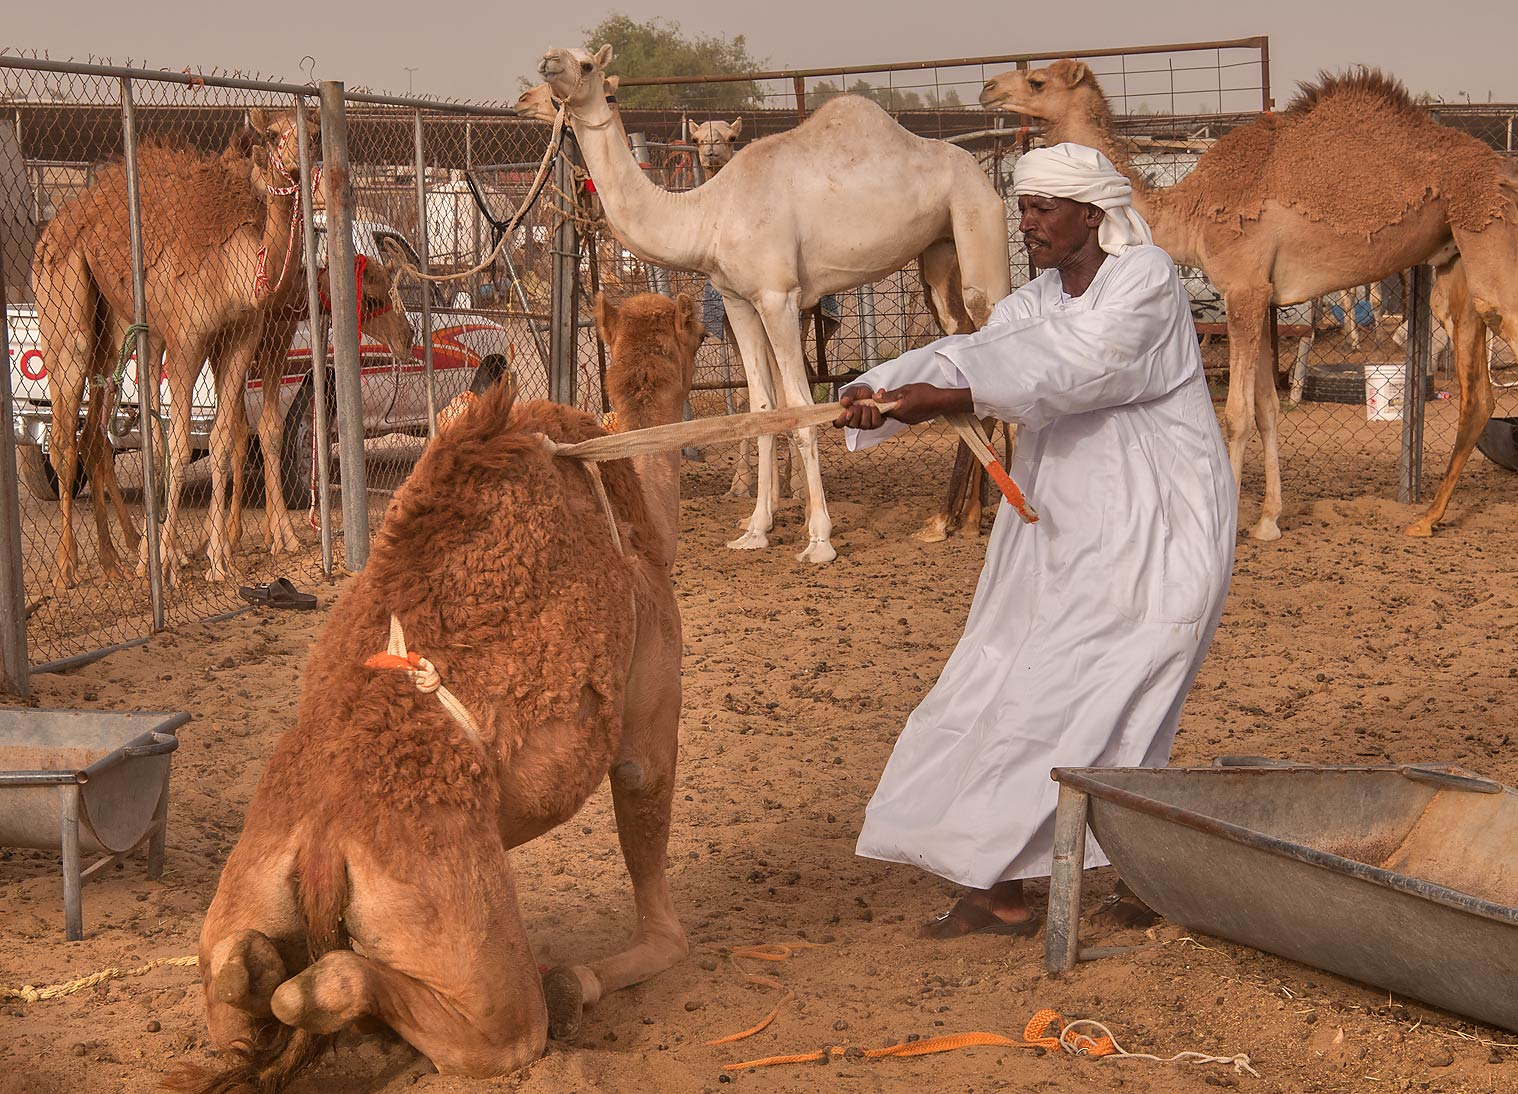 Person taming a camel in Livestock Market, Abu Hamour area. Doha, Qatar